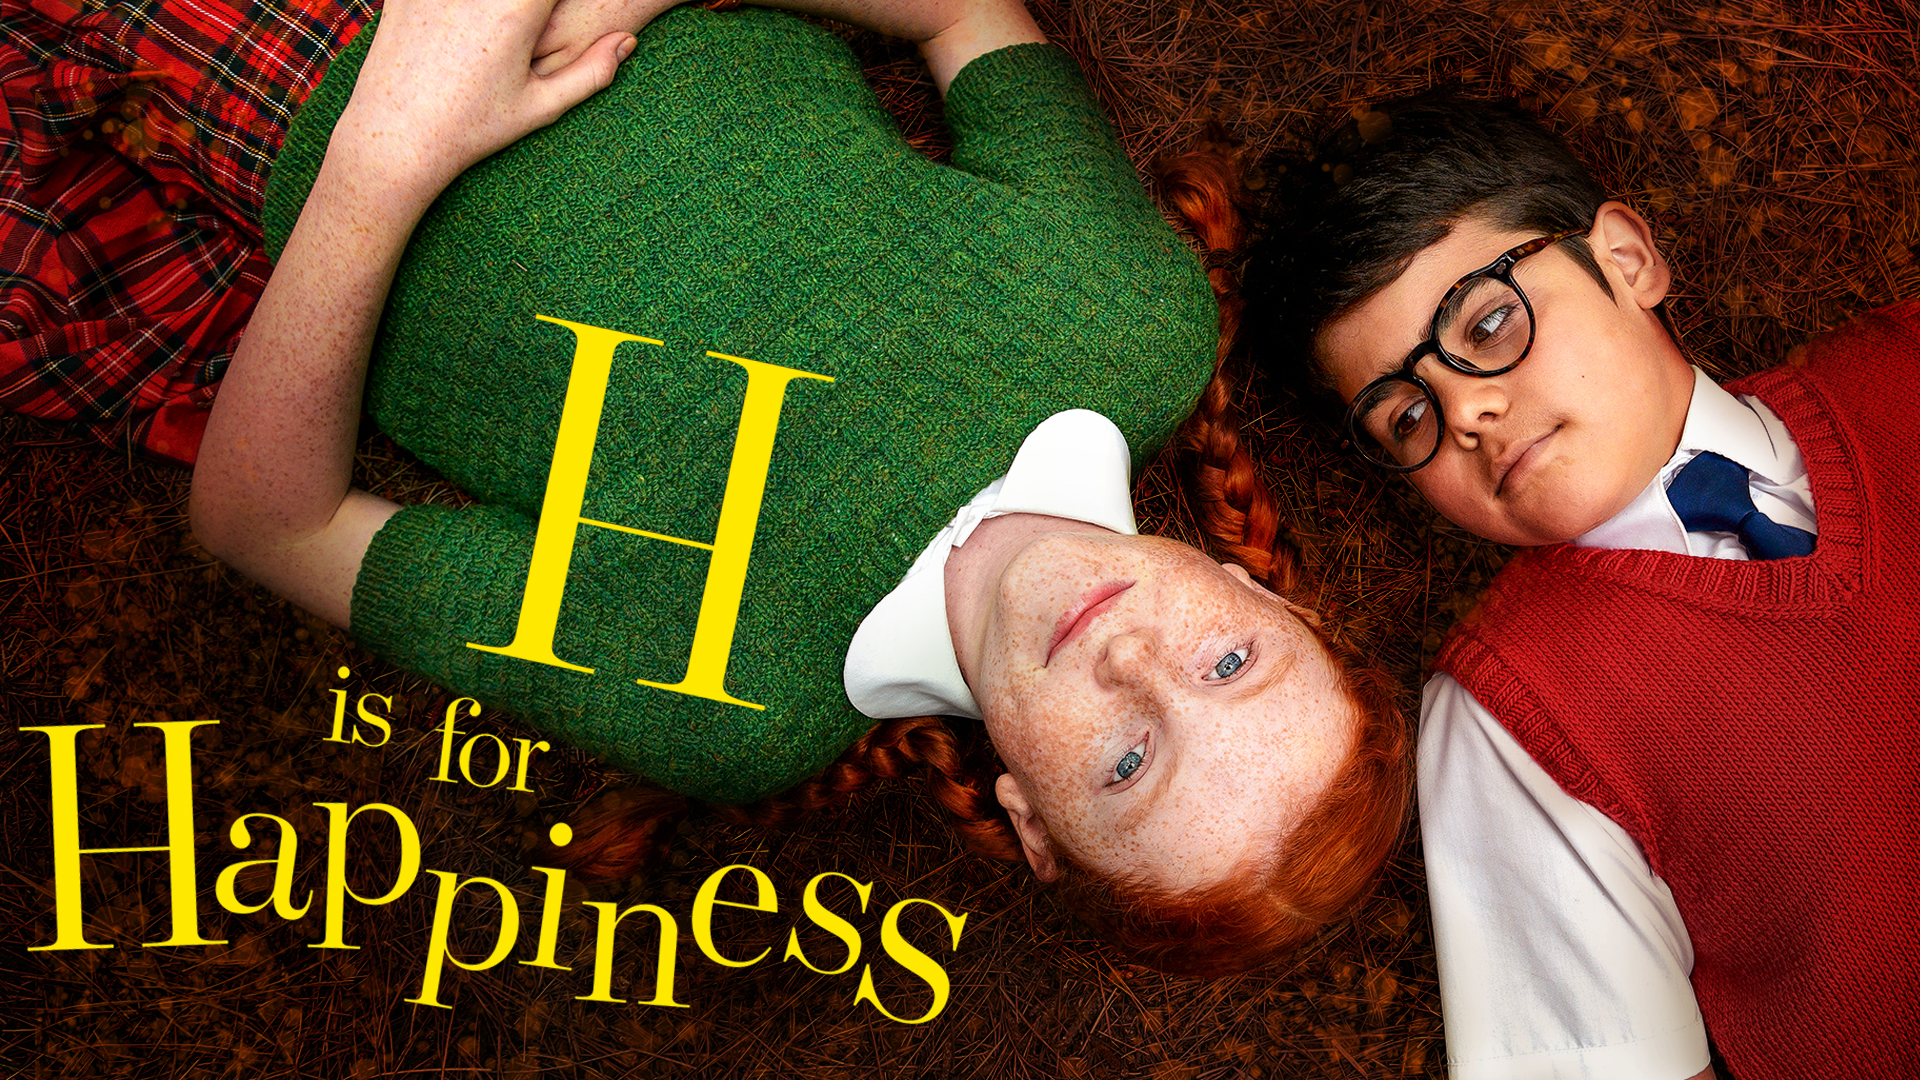 H for Happiness